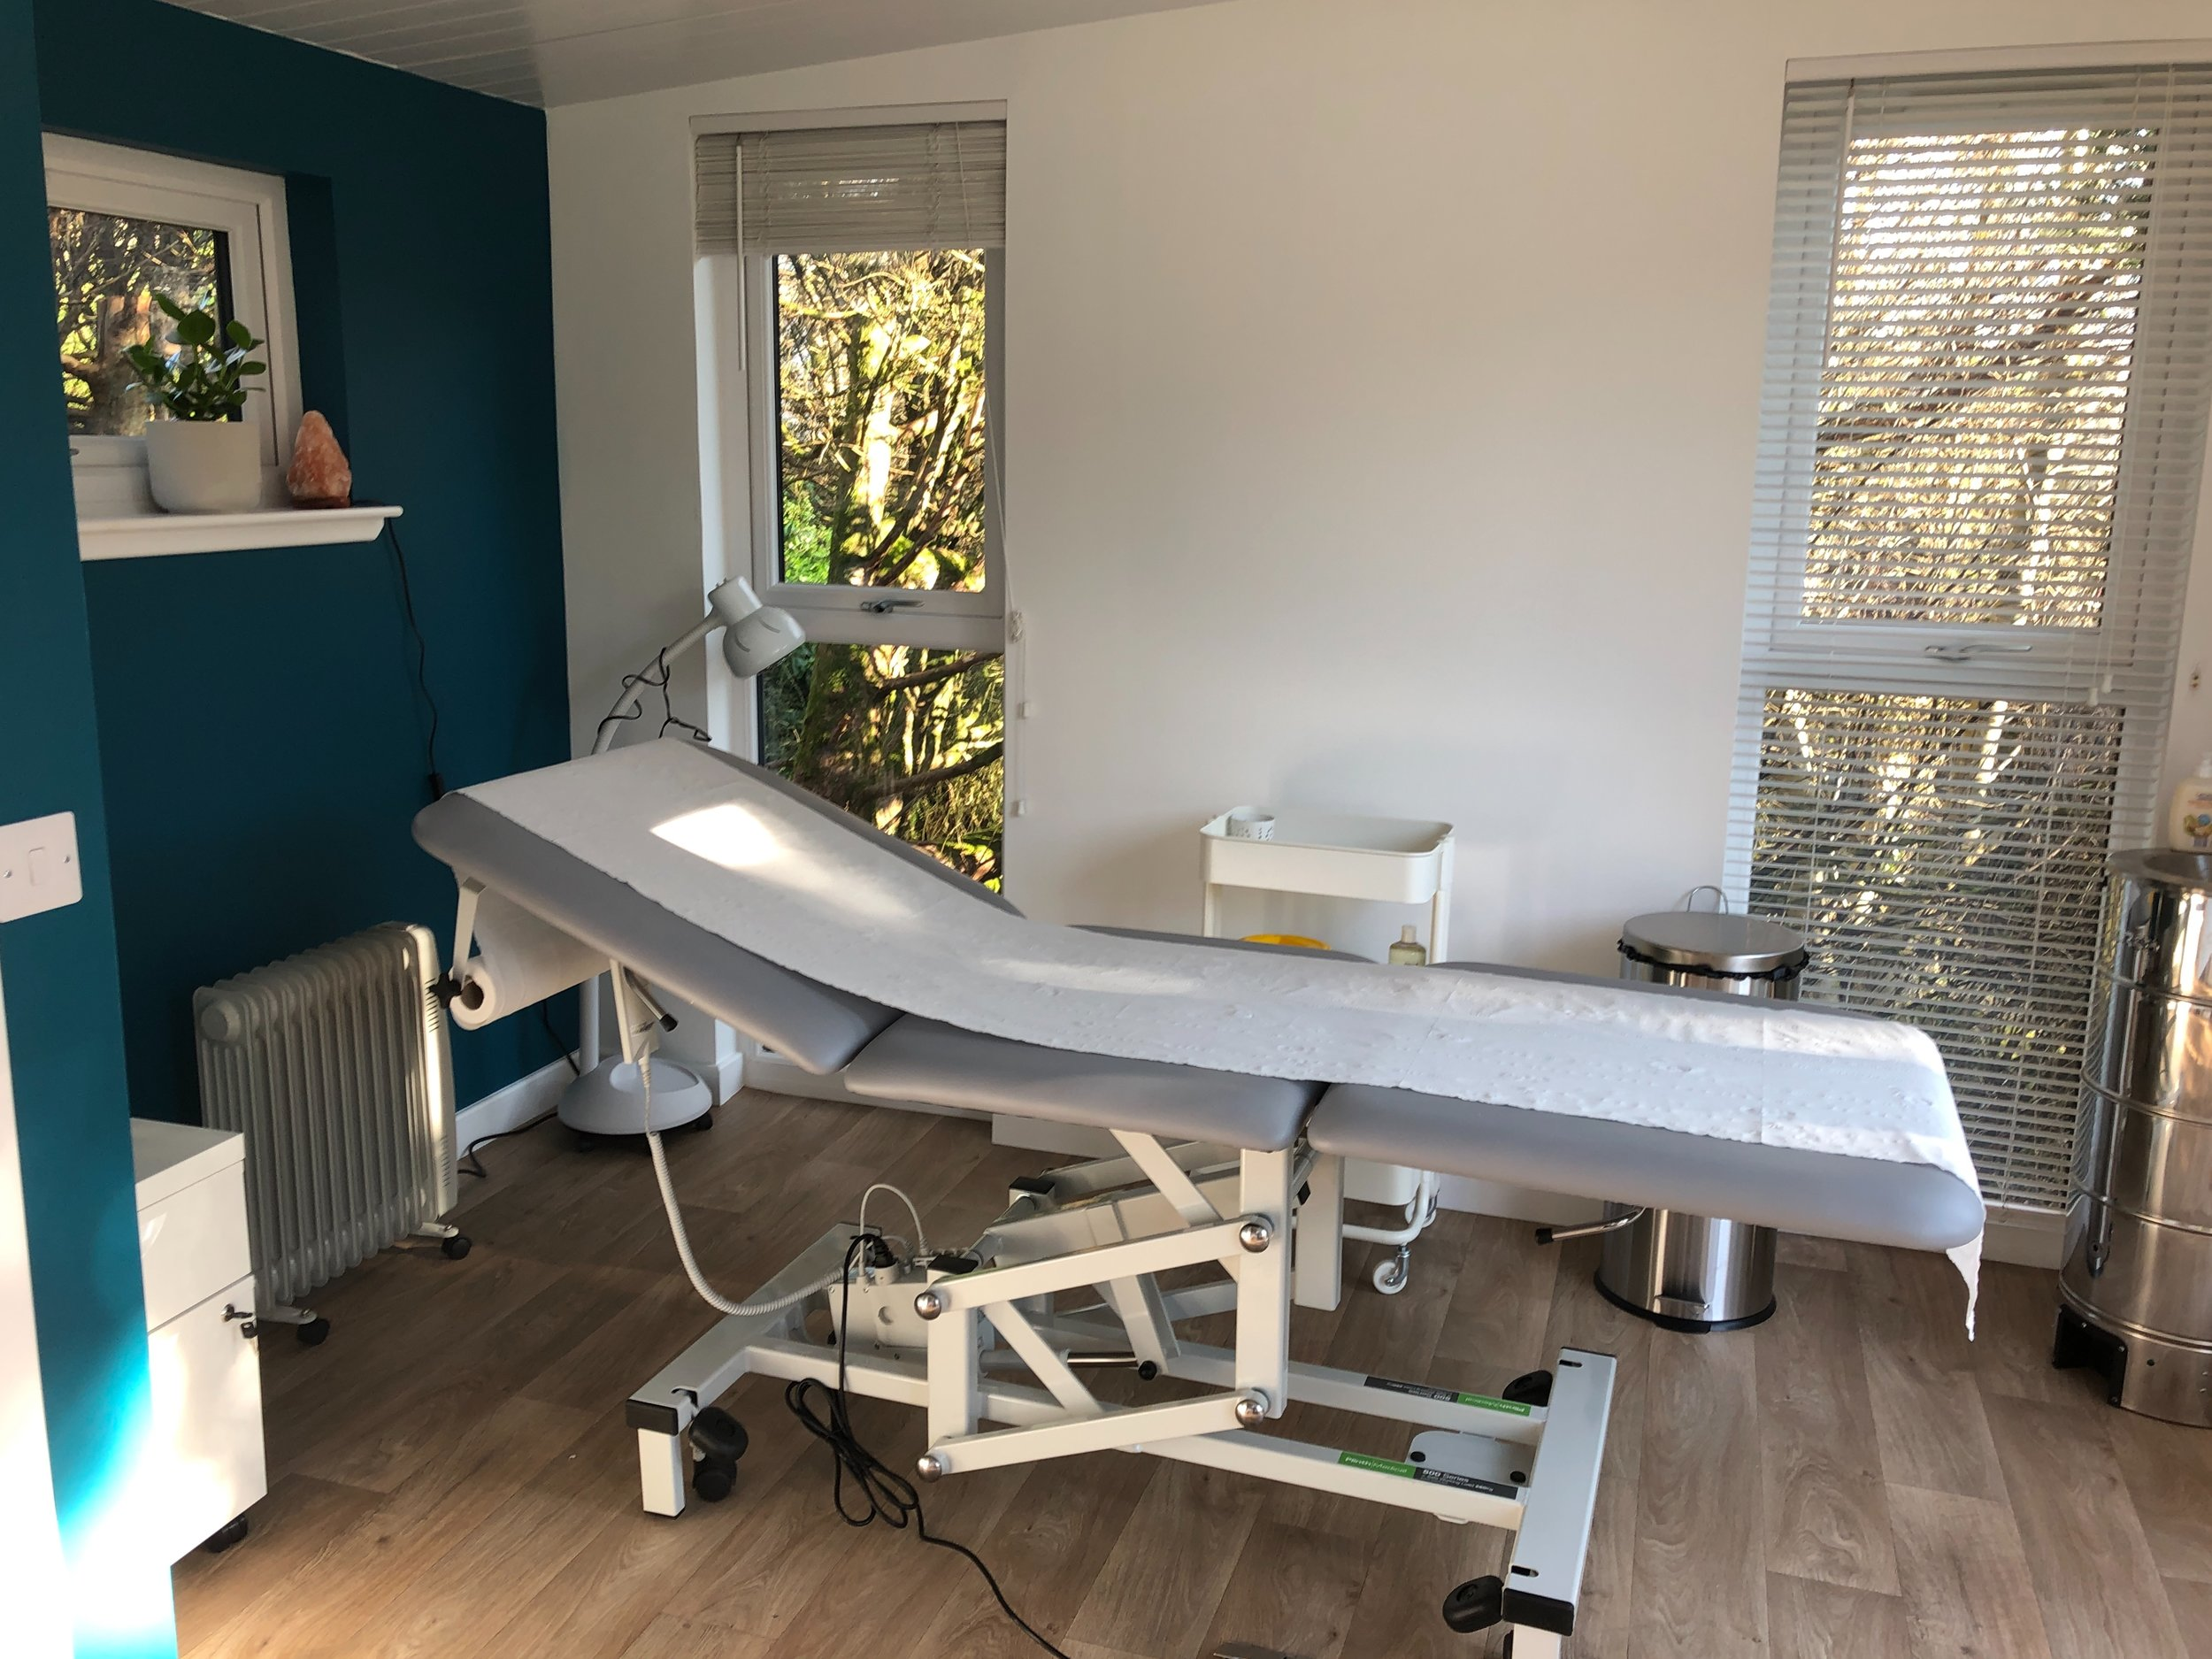 Acupuncture treatment room in Moffat with views